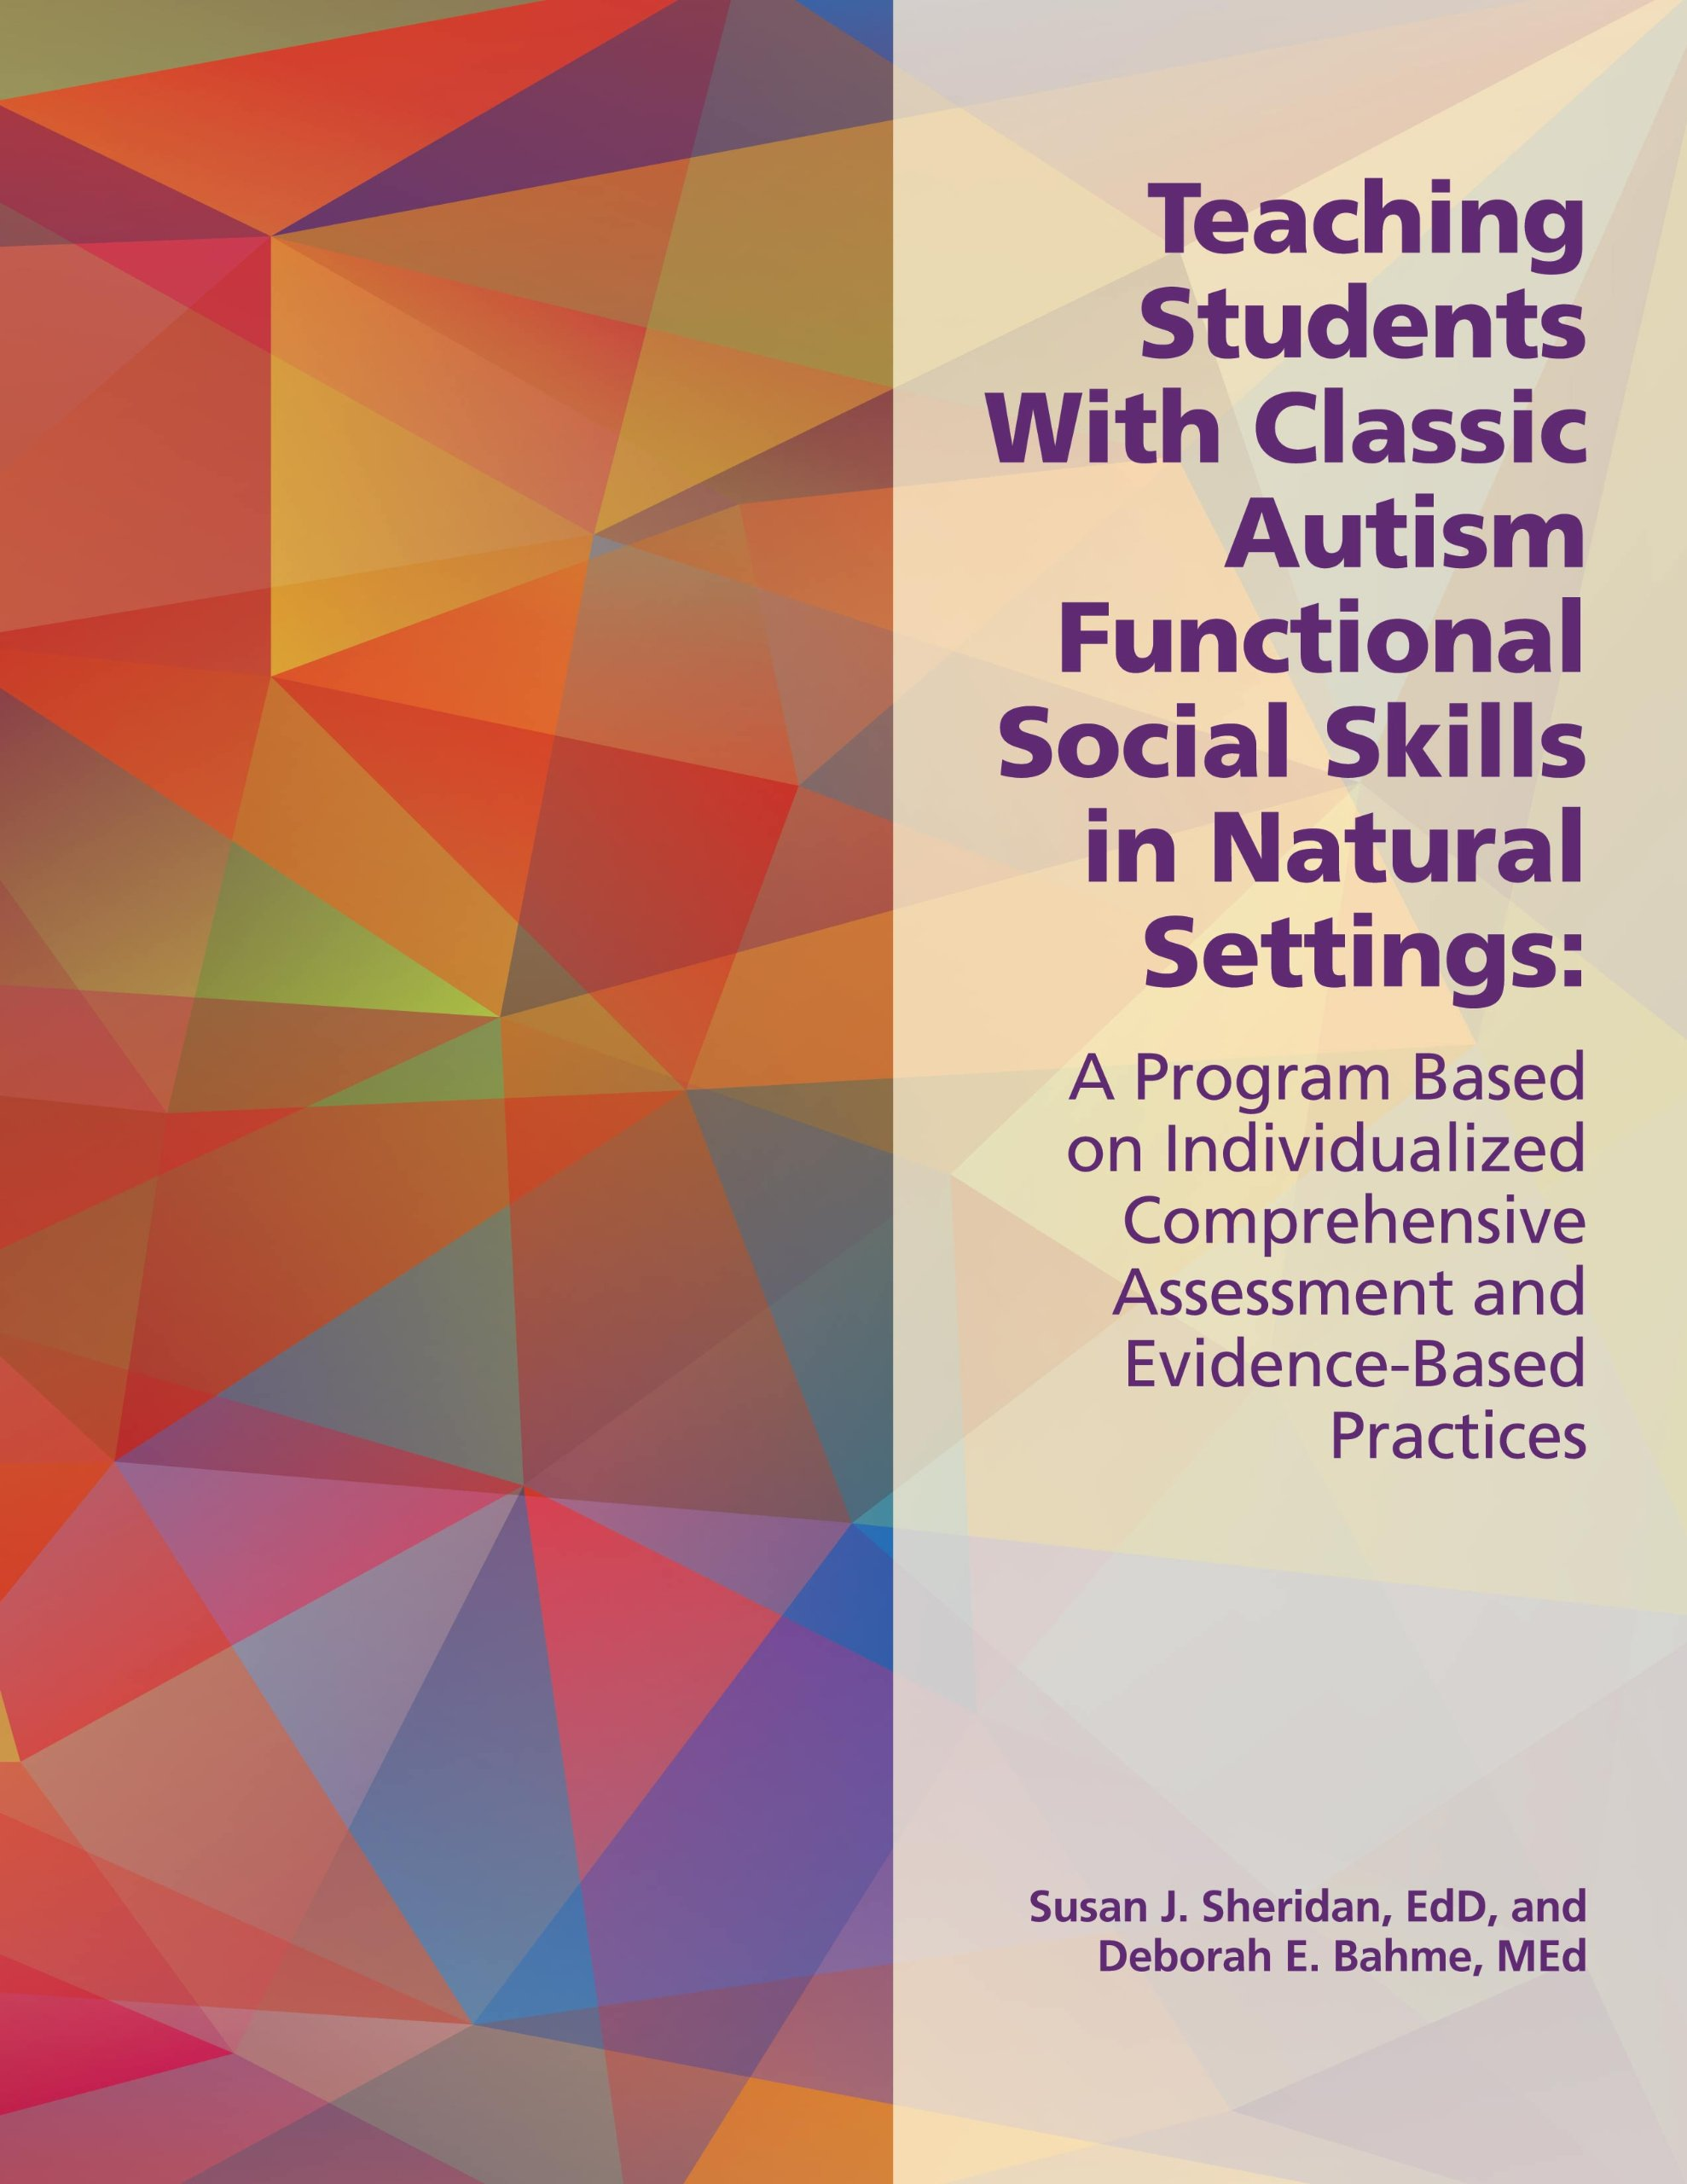 Download Teaching Students With Classic Autism Functional Social Skills: A Program Based on Individualized Comprehensive Assessment and Evidence-Based Practices pdf